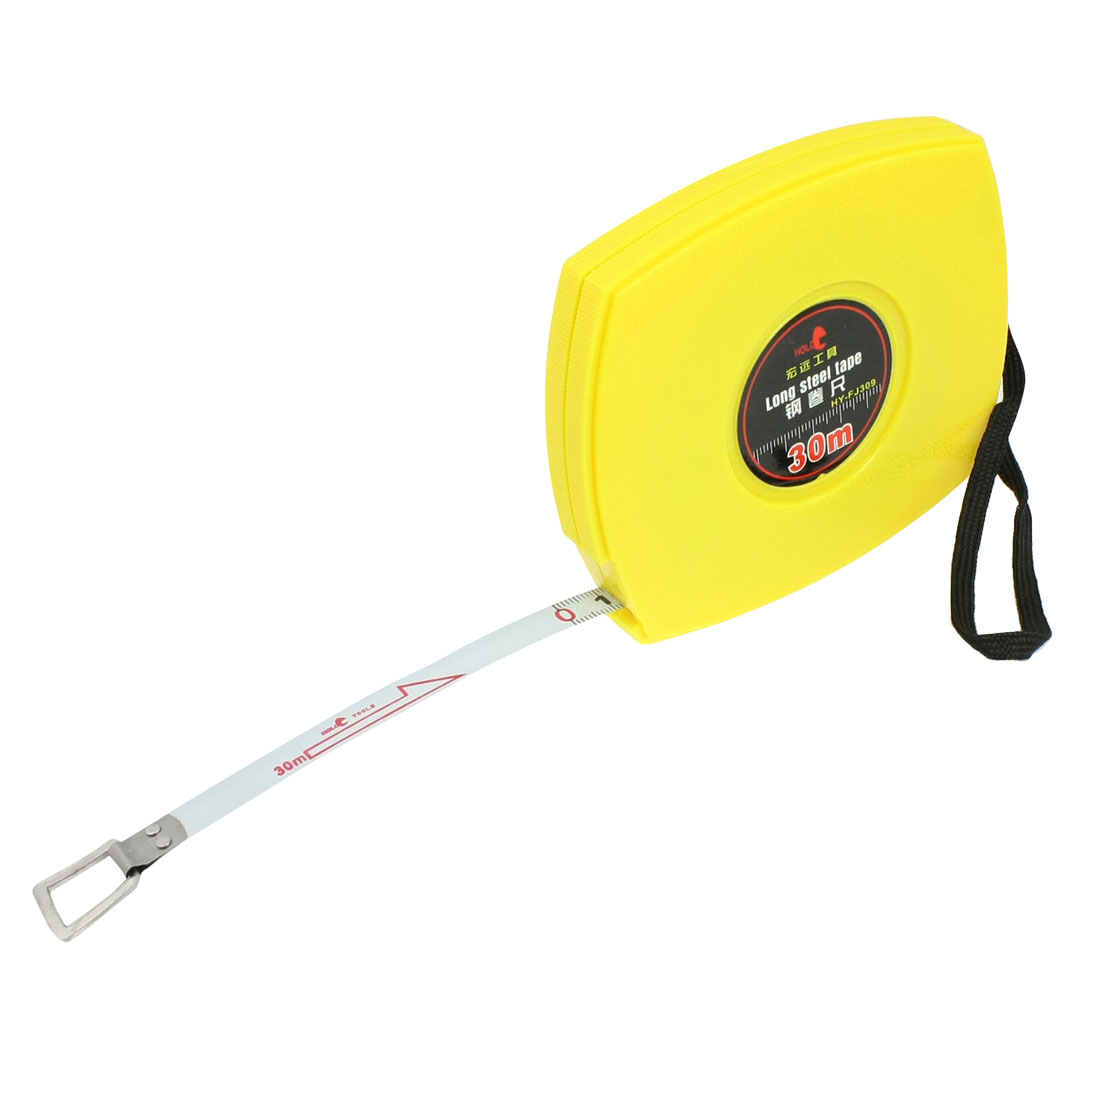 metric retractable steel tape measure ruler measuring tools 30m x 10mm